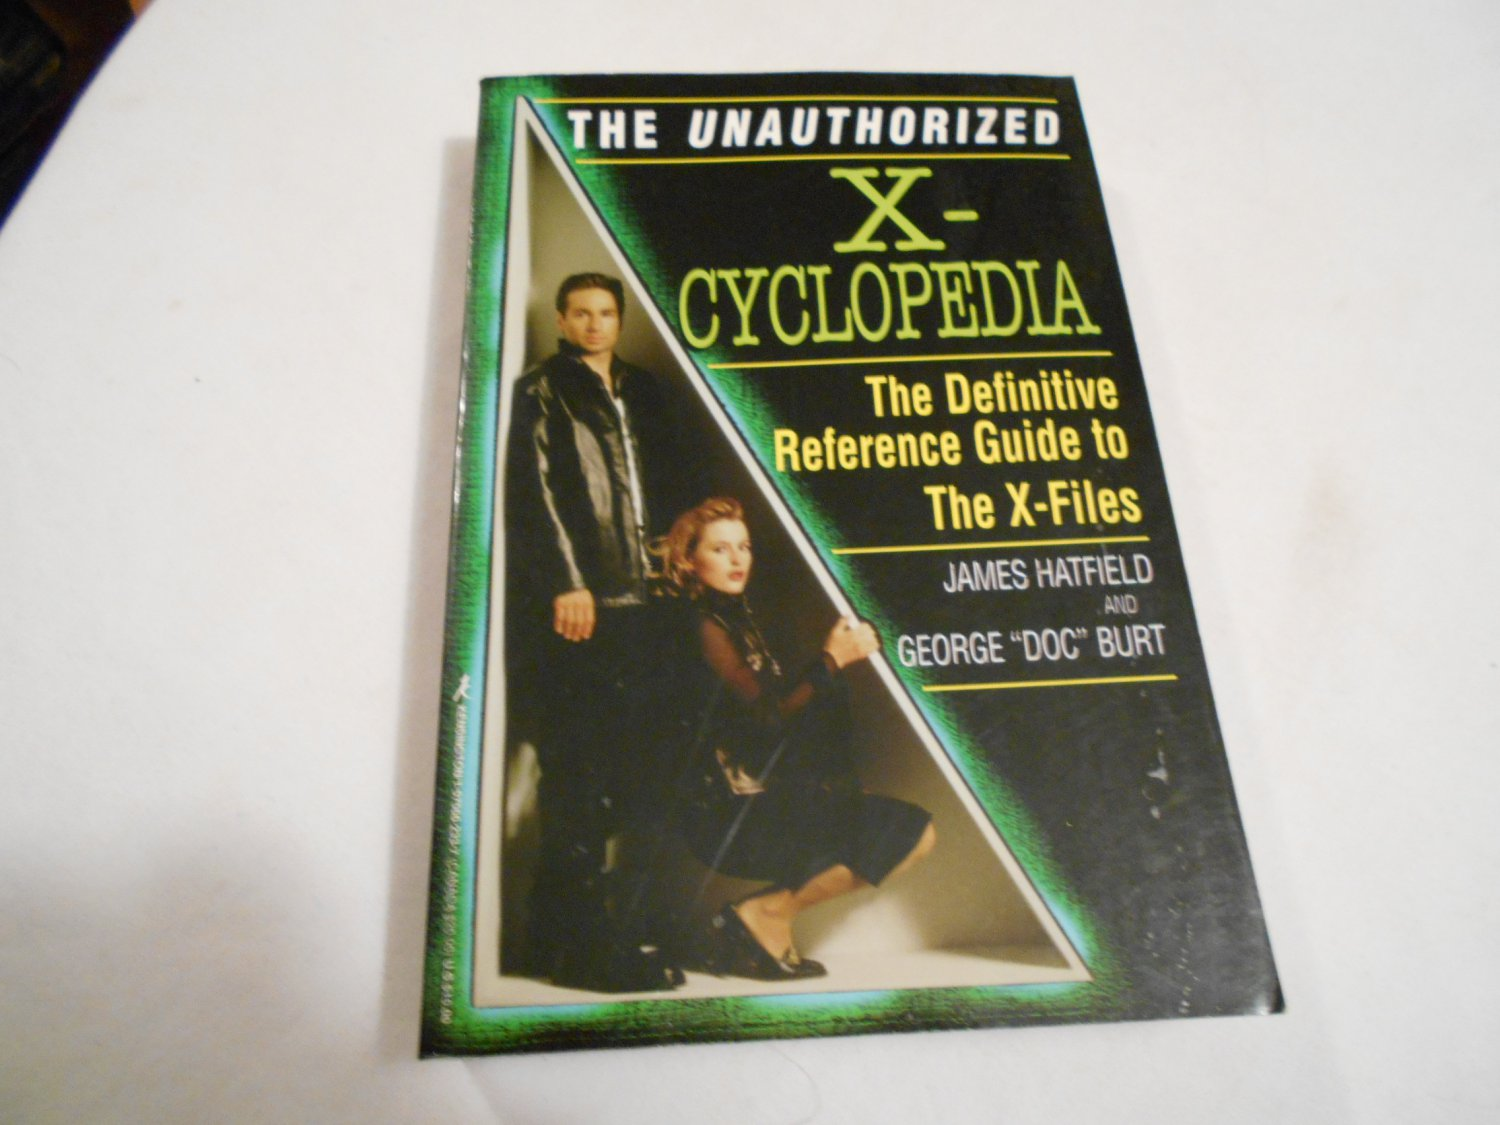 The Unauthorized X-Cyclopedia: Reference Guide to the X-Files by James Hatfield (1997) (GR4)